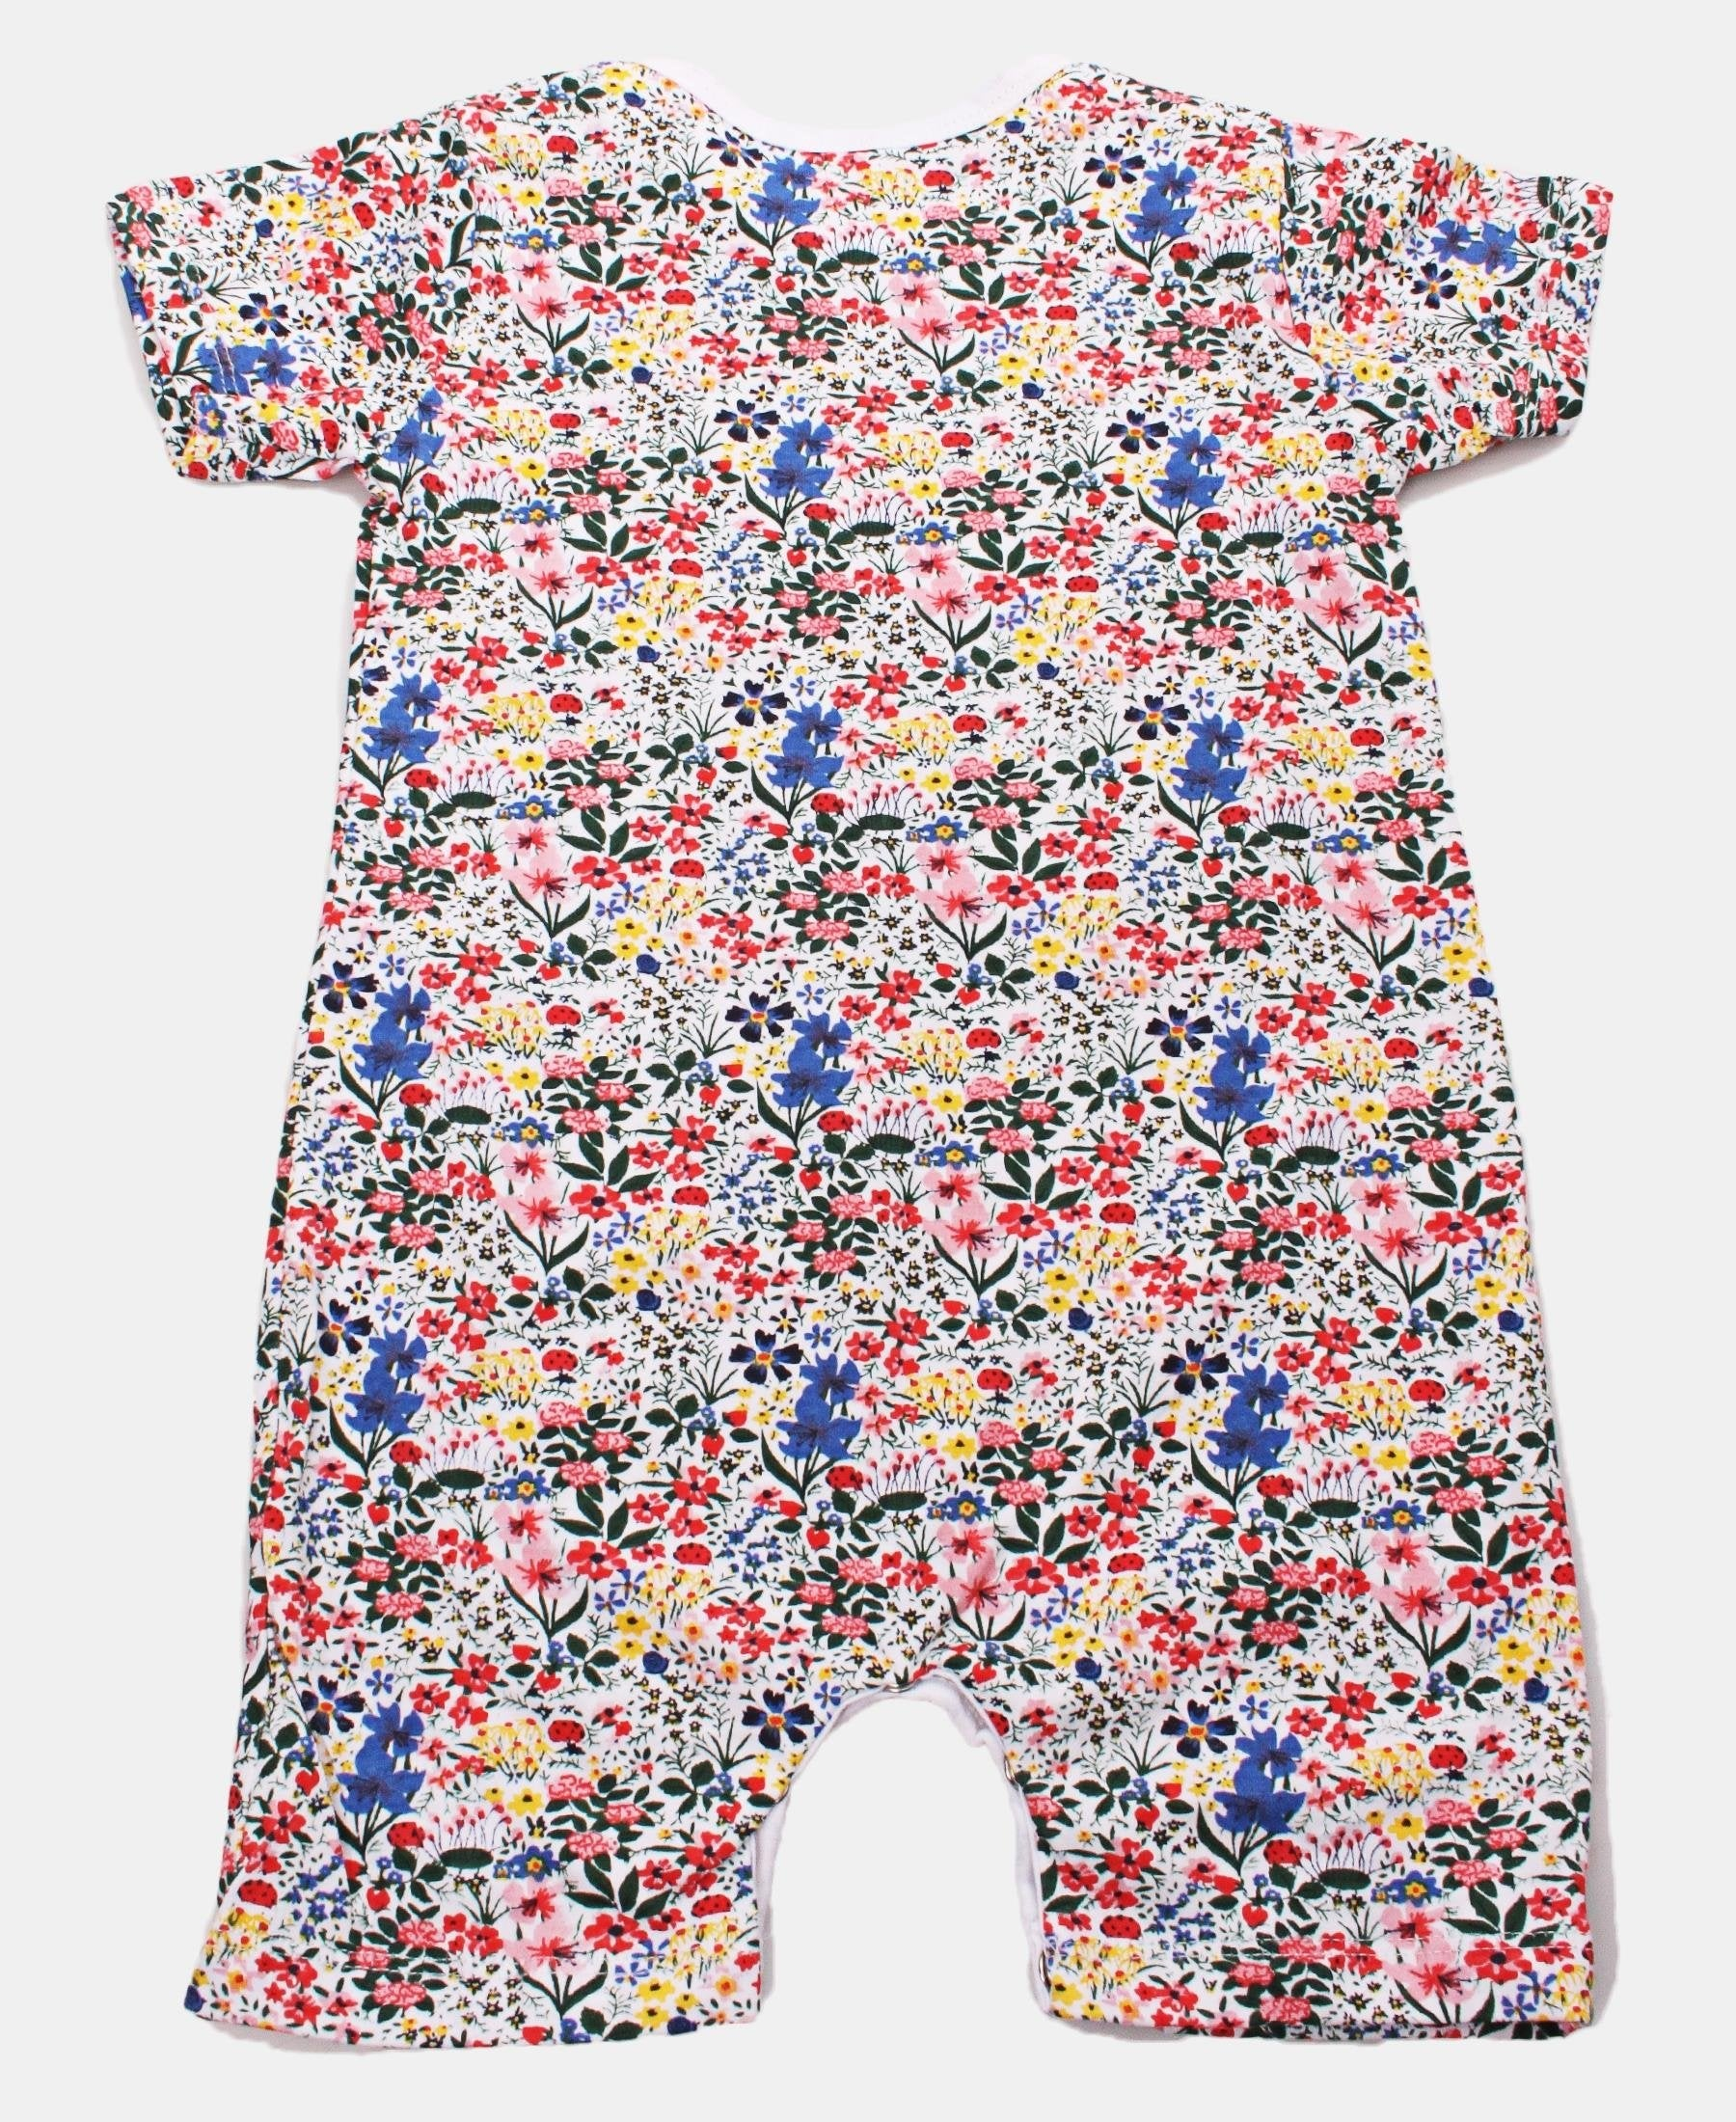 Infants Ditsy Print Short Sleeve Rompers - Multi